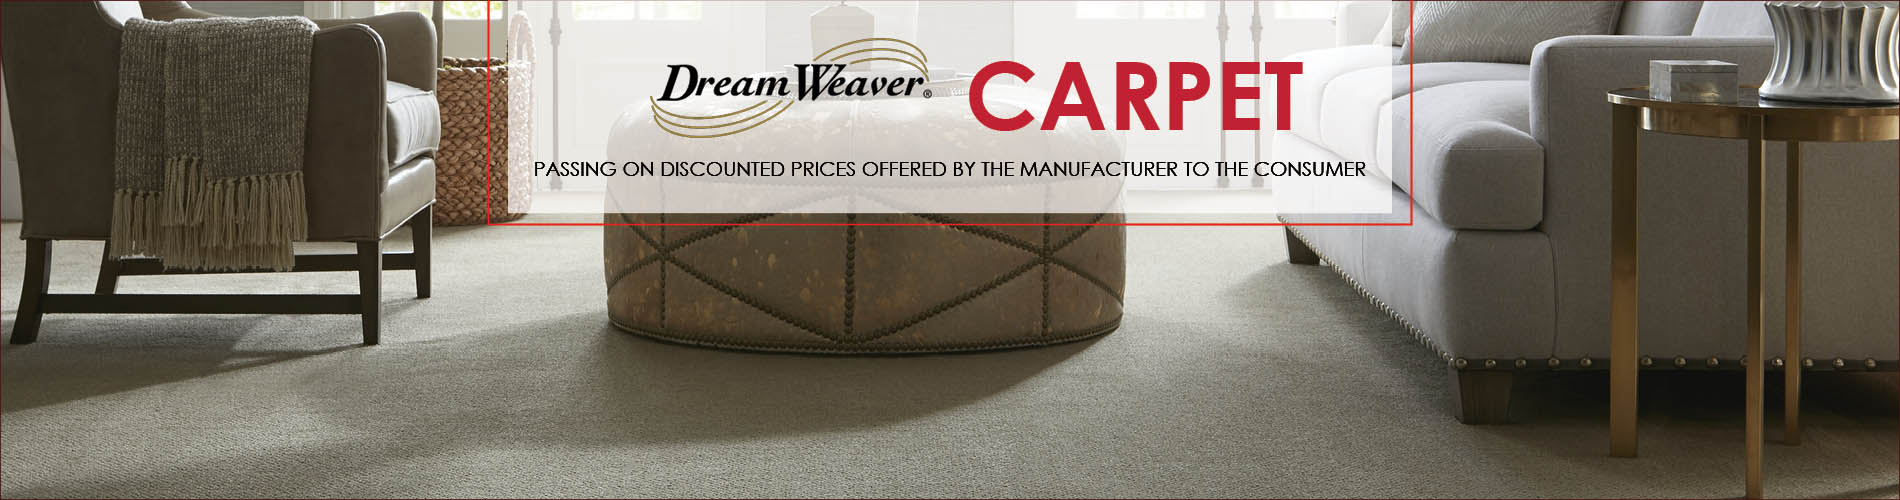 Save on DreamWeaver Carpet at Anniston Floors To Go we are passing on discounted prices offered by the manufacturer directly to you!